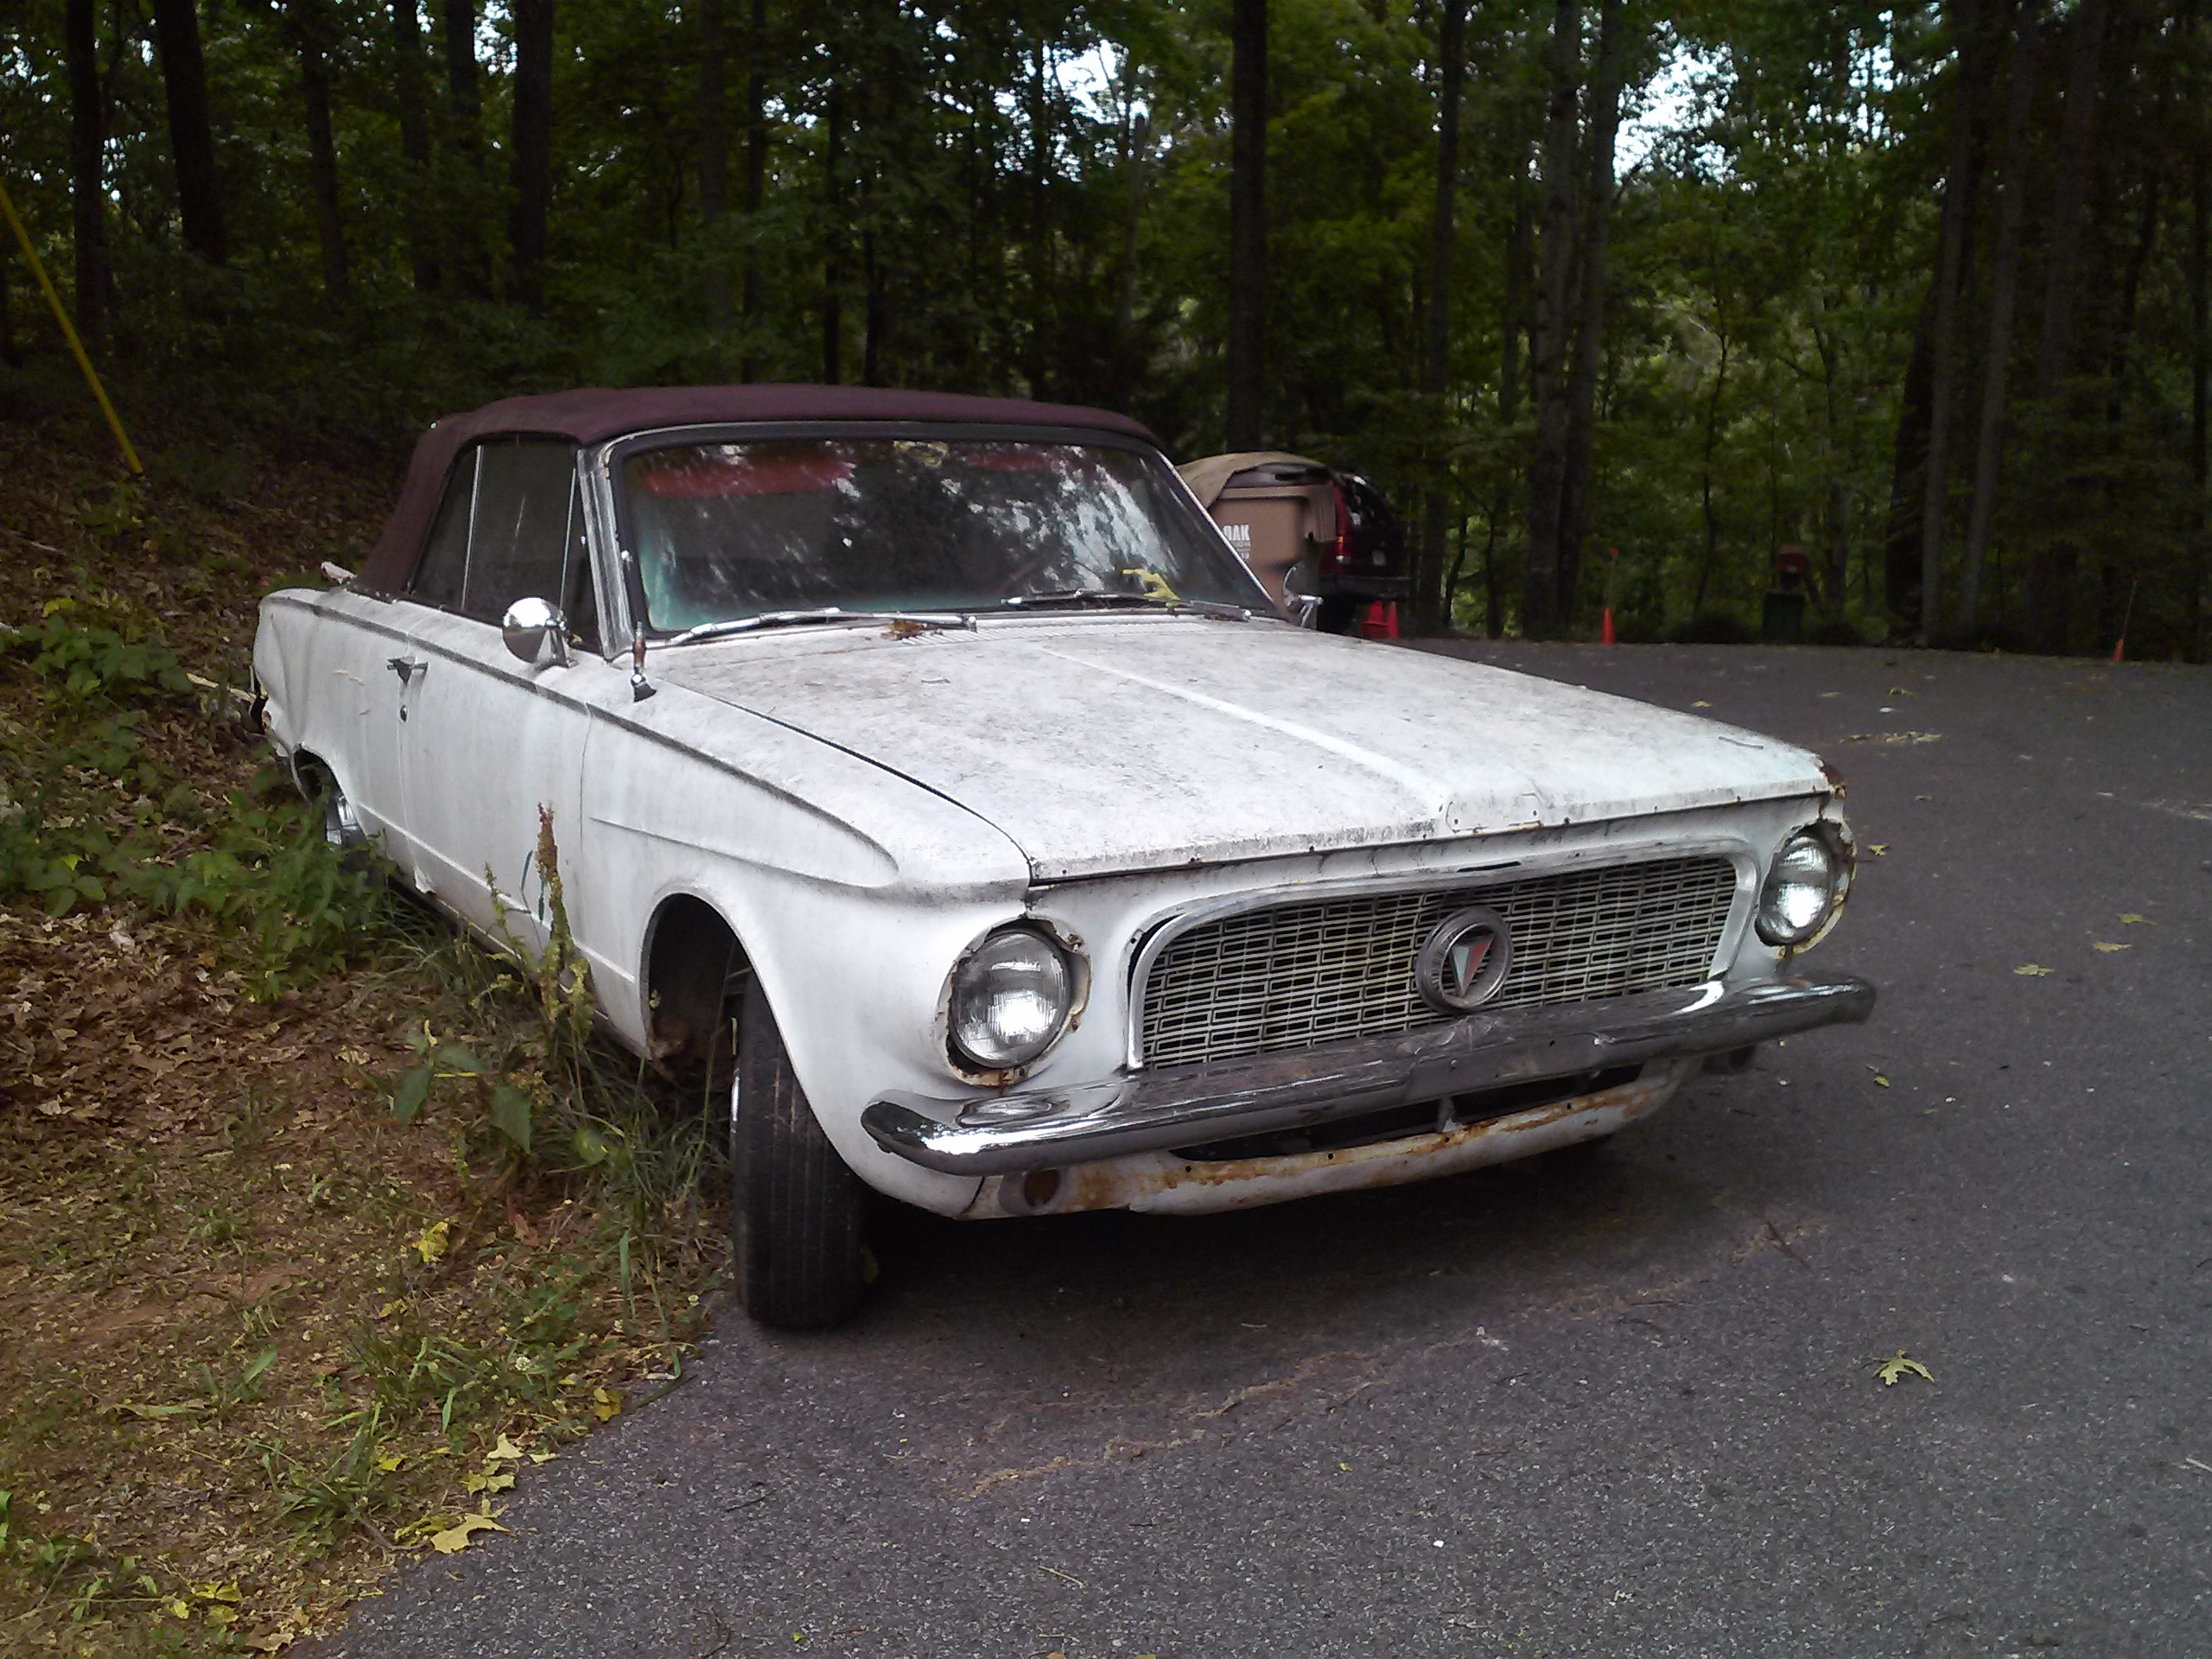 for sale 1963 plymouth valiant signet convertible for parts or restoration for a bodies. Black Bedroom Furniture Sets. Home Design Ideas